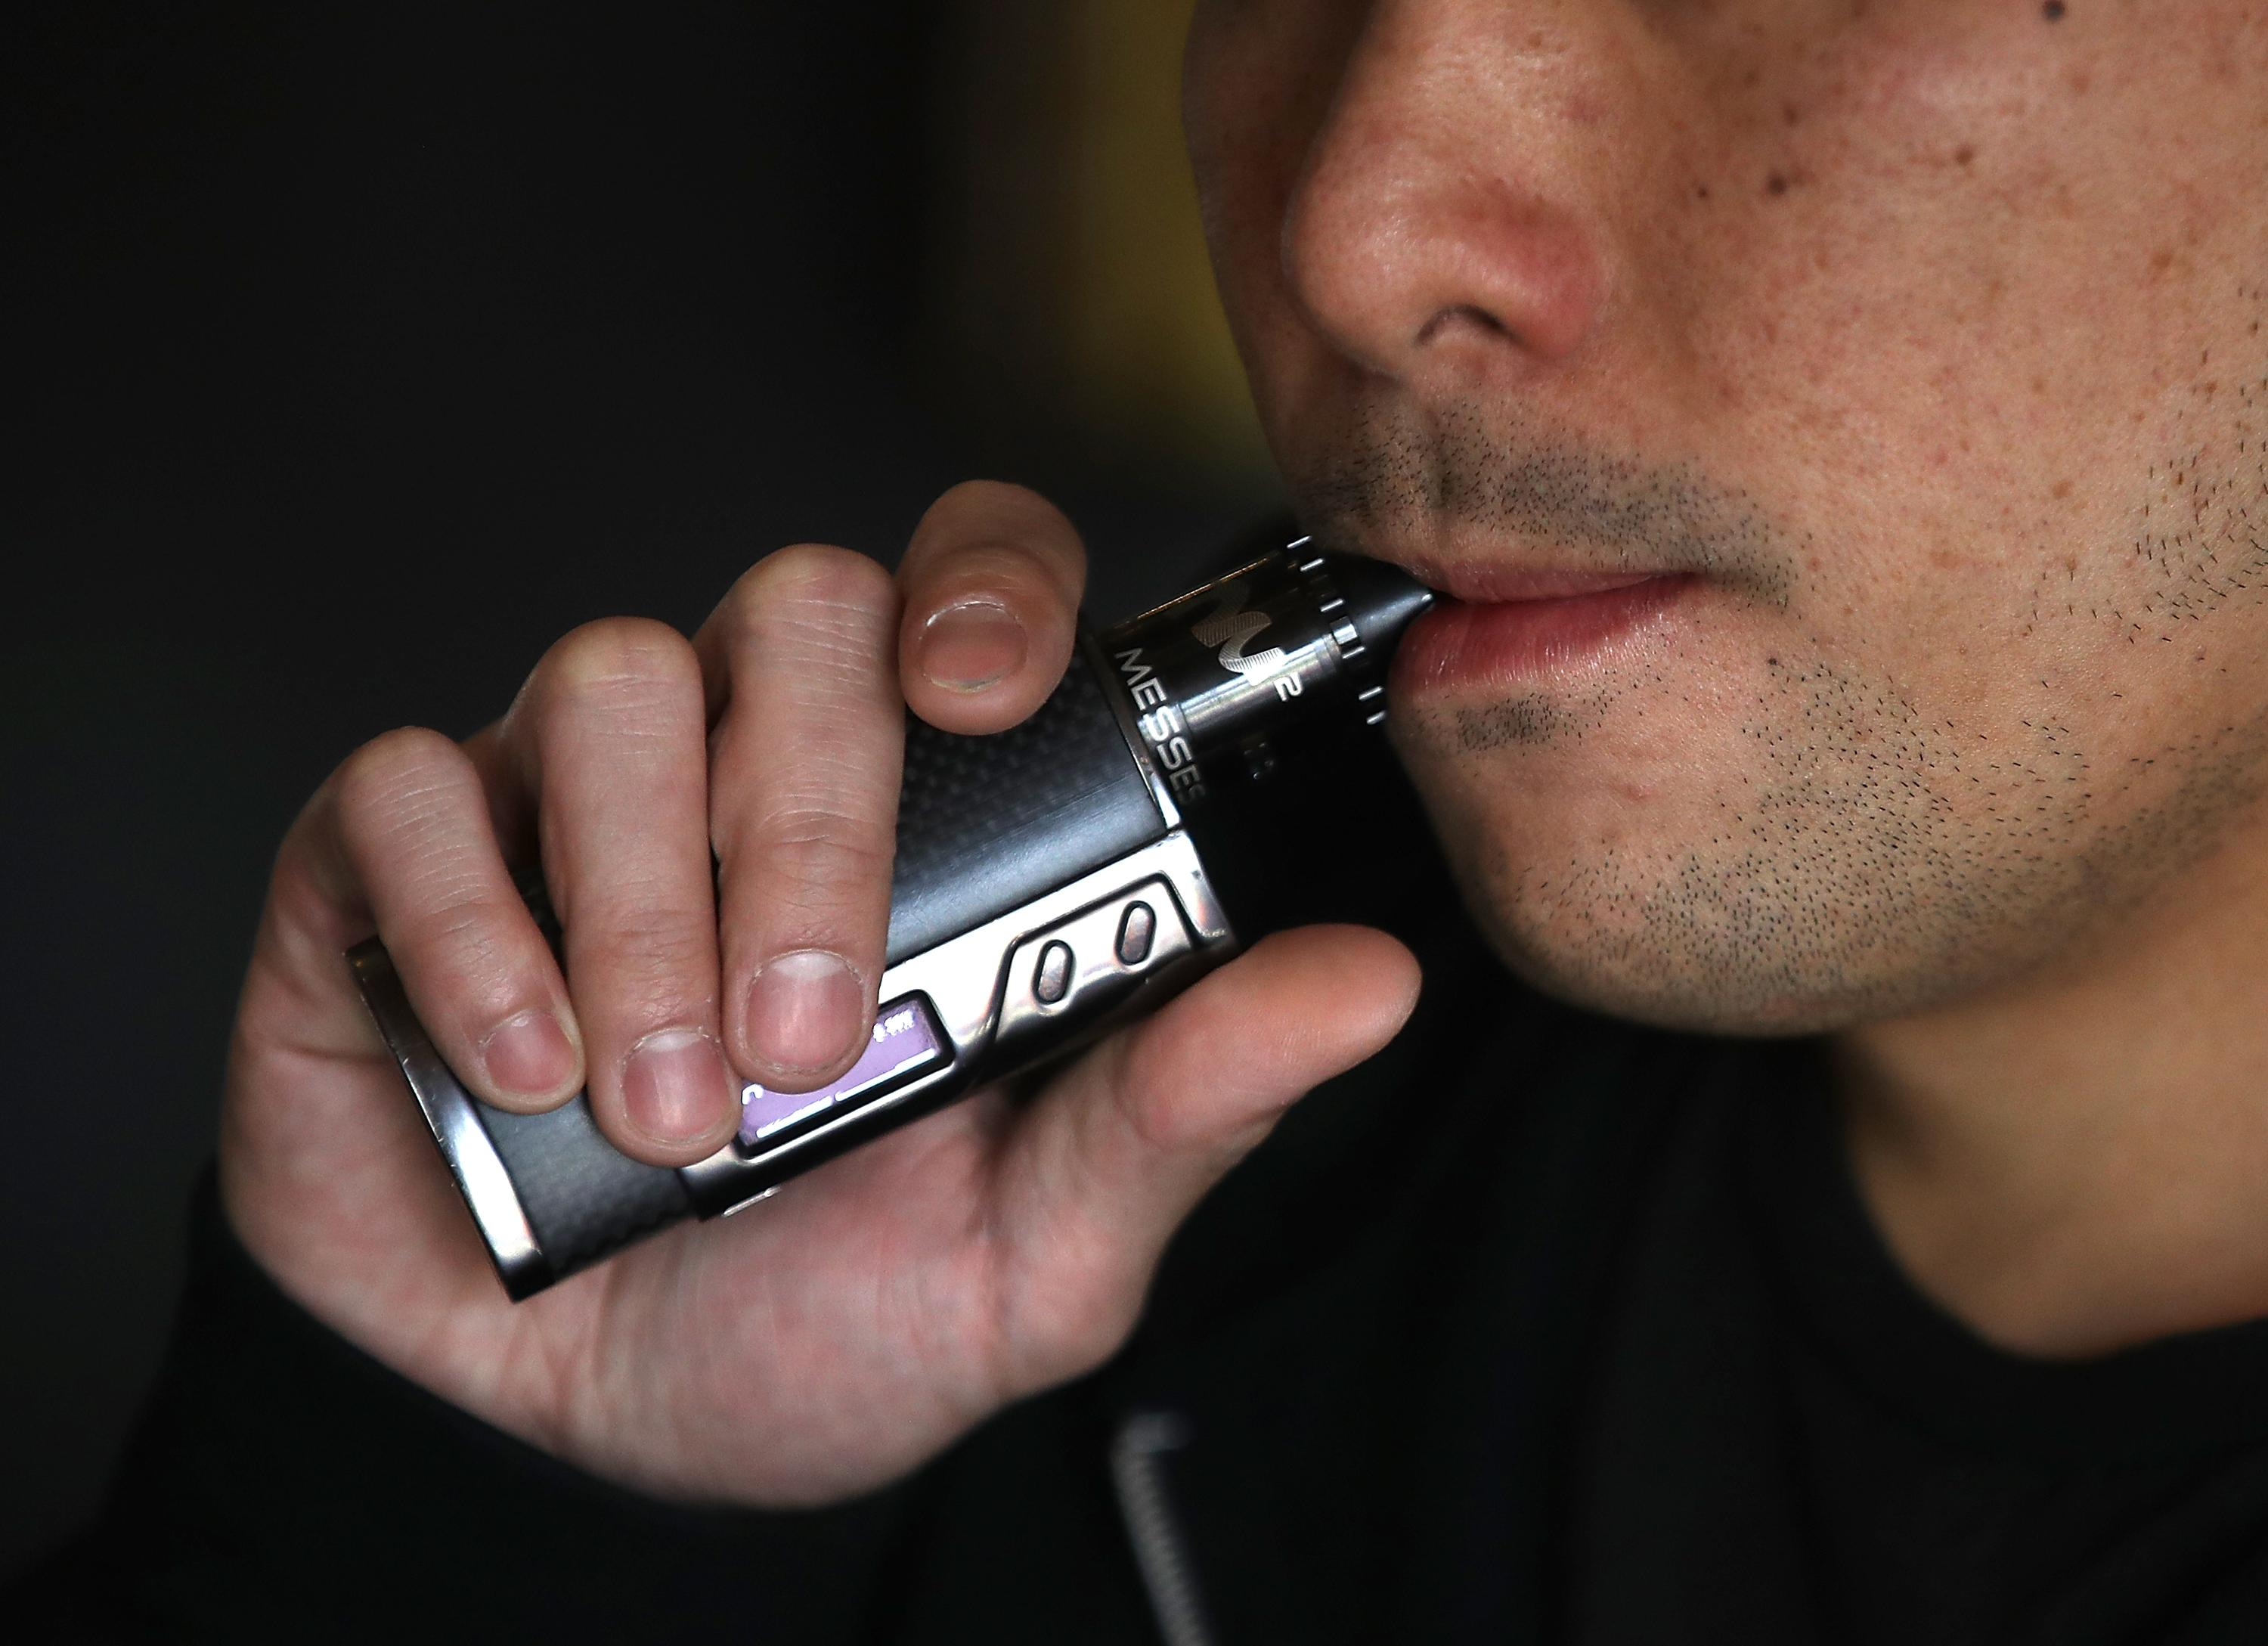 TV Producer Dies After E-Cigarette Explodes & Burns 80% Of His Body